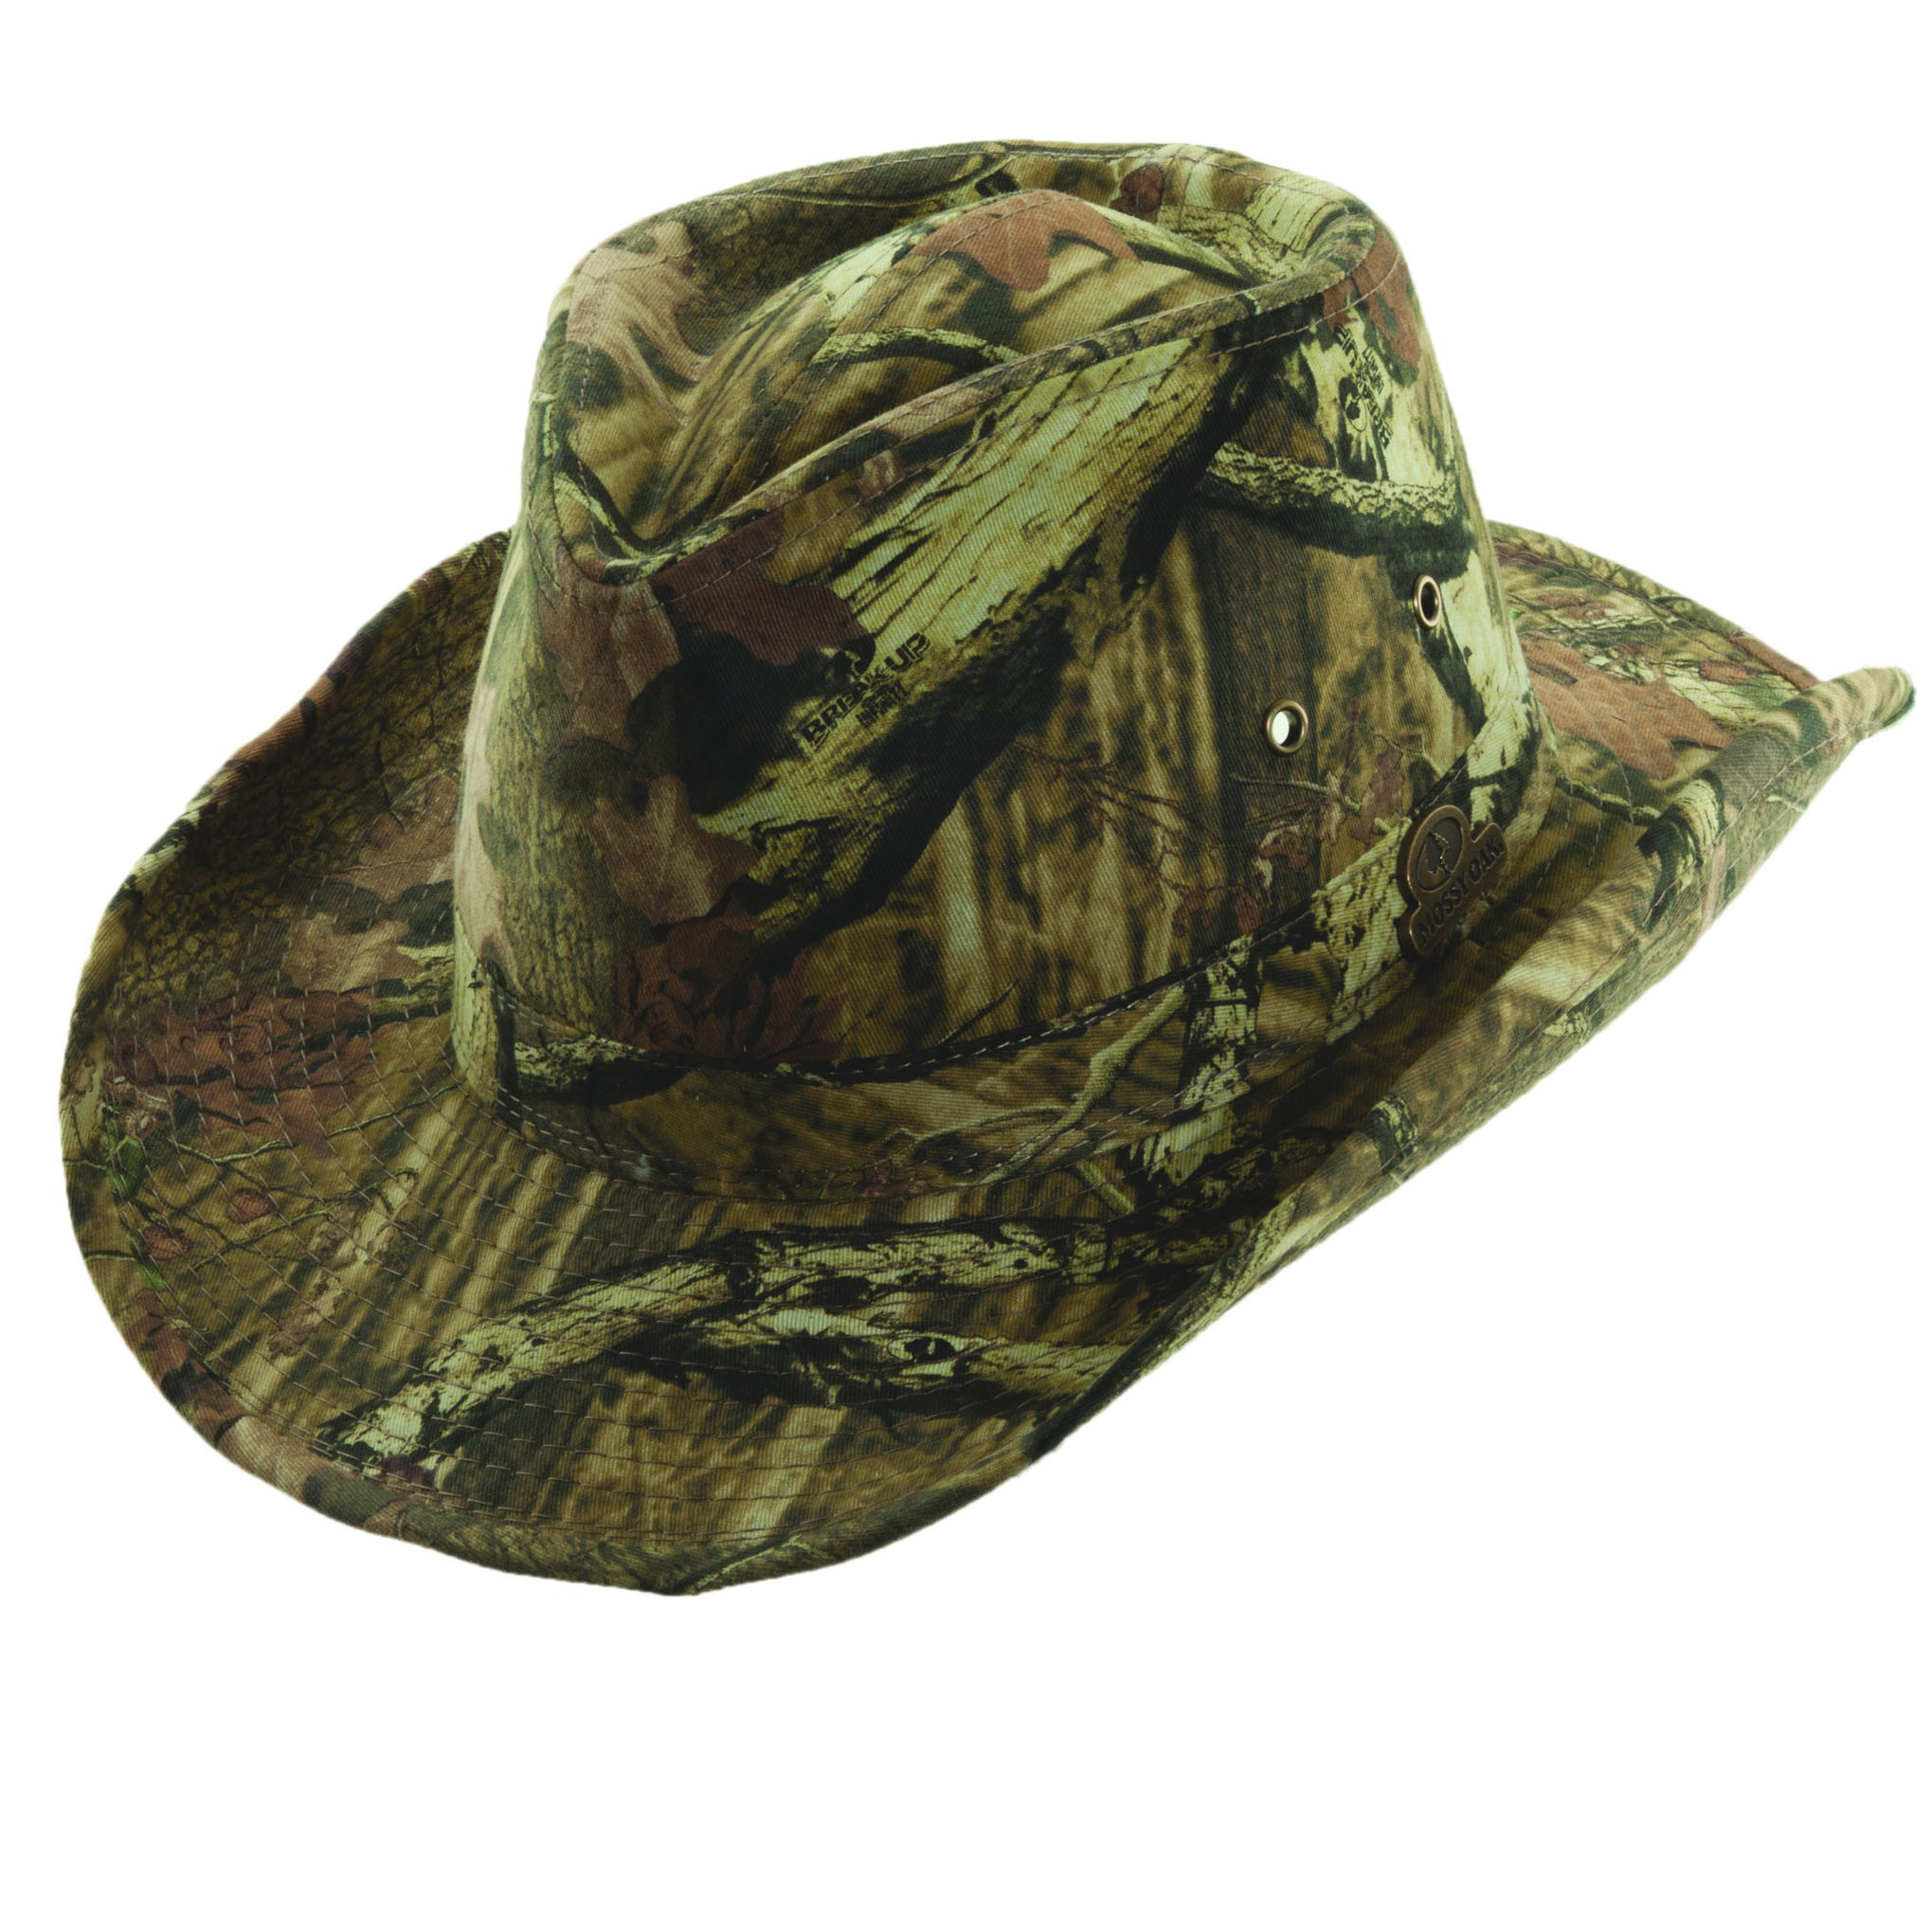 mossy oak outback hat with shapeable brim explorer hats